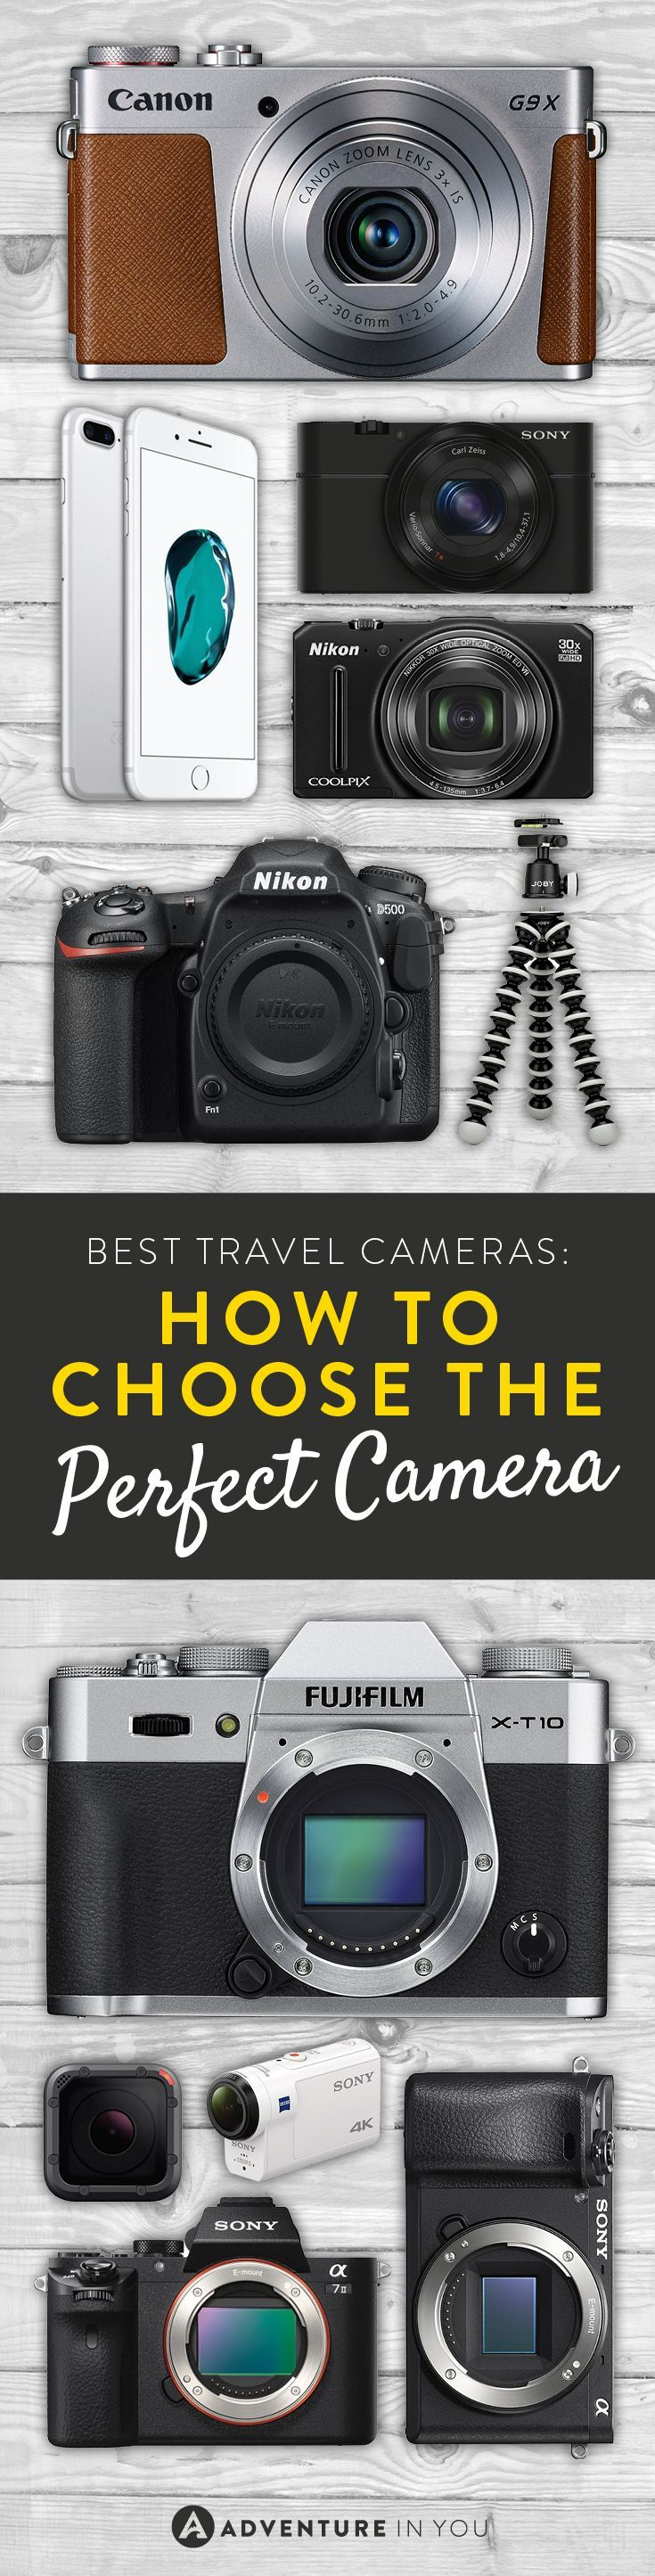 Best Travel Cameras   Recommendations on the best mirrorless, point and shoot, action, or DSLR camera to take traveling with you.